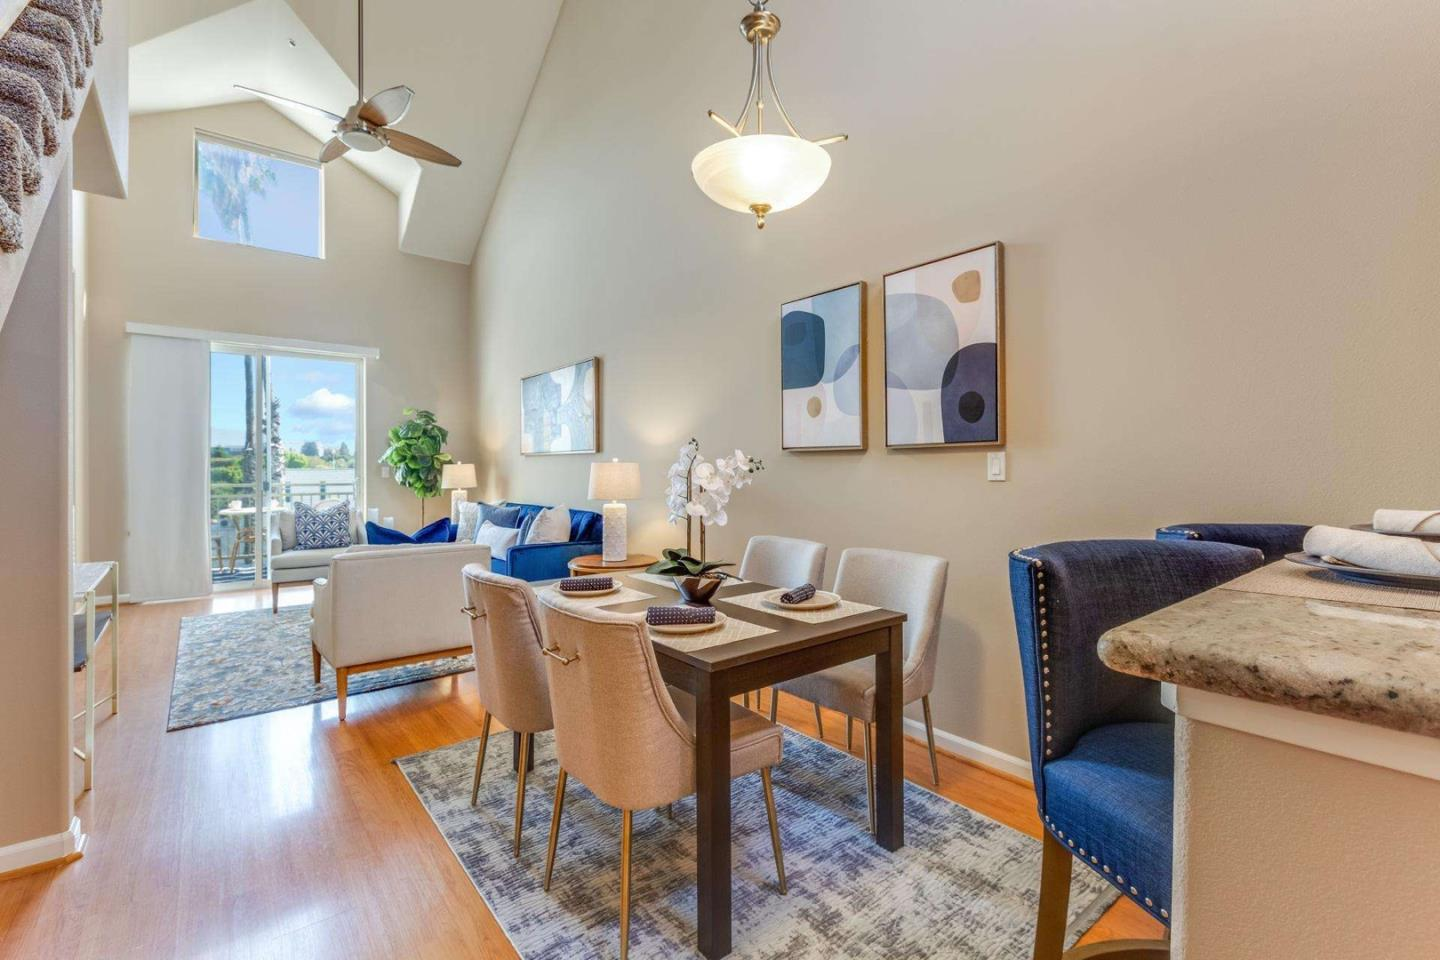 One-of-a-kind unit on University! The conveniently located unit features 2 bedrooms, 2 bathrooms, a loft and an open floor plan complete with high ceilings and gleaming hardwood floors. An expansive kitchen including copious amounts of countertop space to create and cabinet storage galore. Relax with ease at the end of the day on your private balcony overlooking the neighborhood. Personal washer and dryer closet in-unit and underground garage parking...the list goes on! Perfectly placed just moments away from Hwy 101, the Dumbarton Bridge, Amazon, Ravenswood Shopping Center, Facebook HQ, IKEA and Cal Train. Don't miss this one!